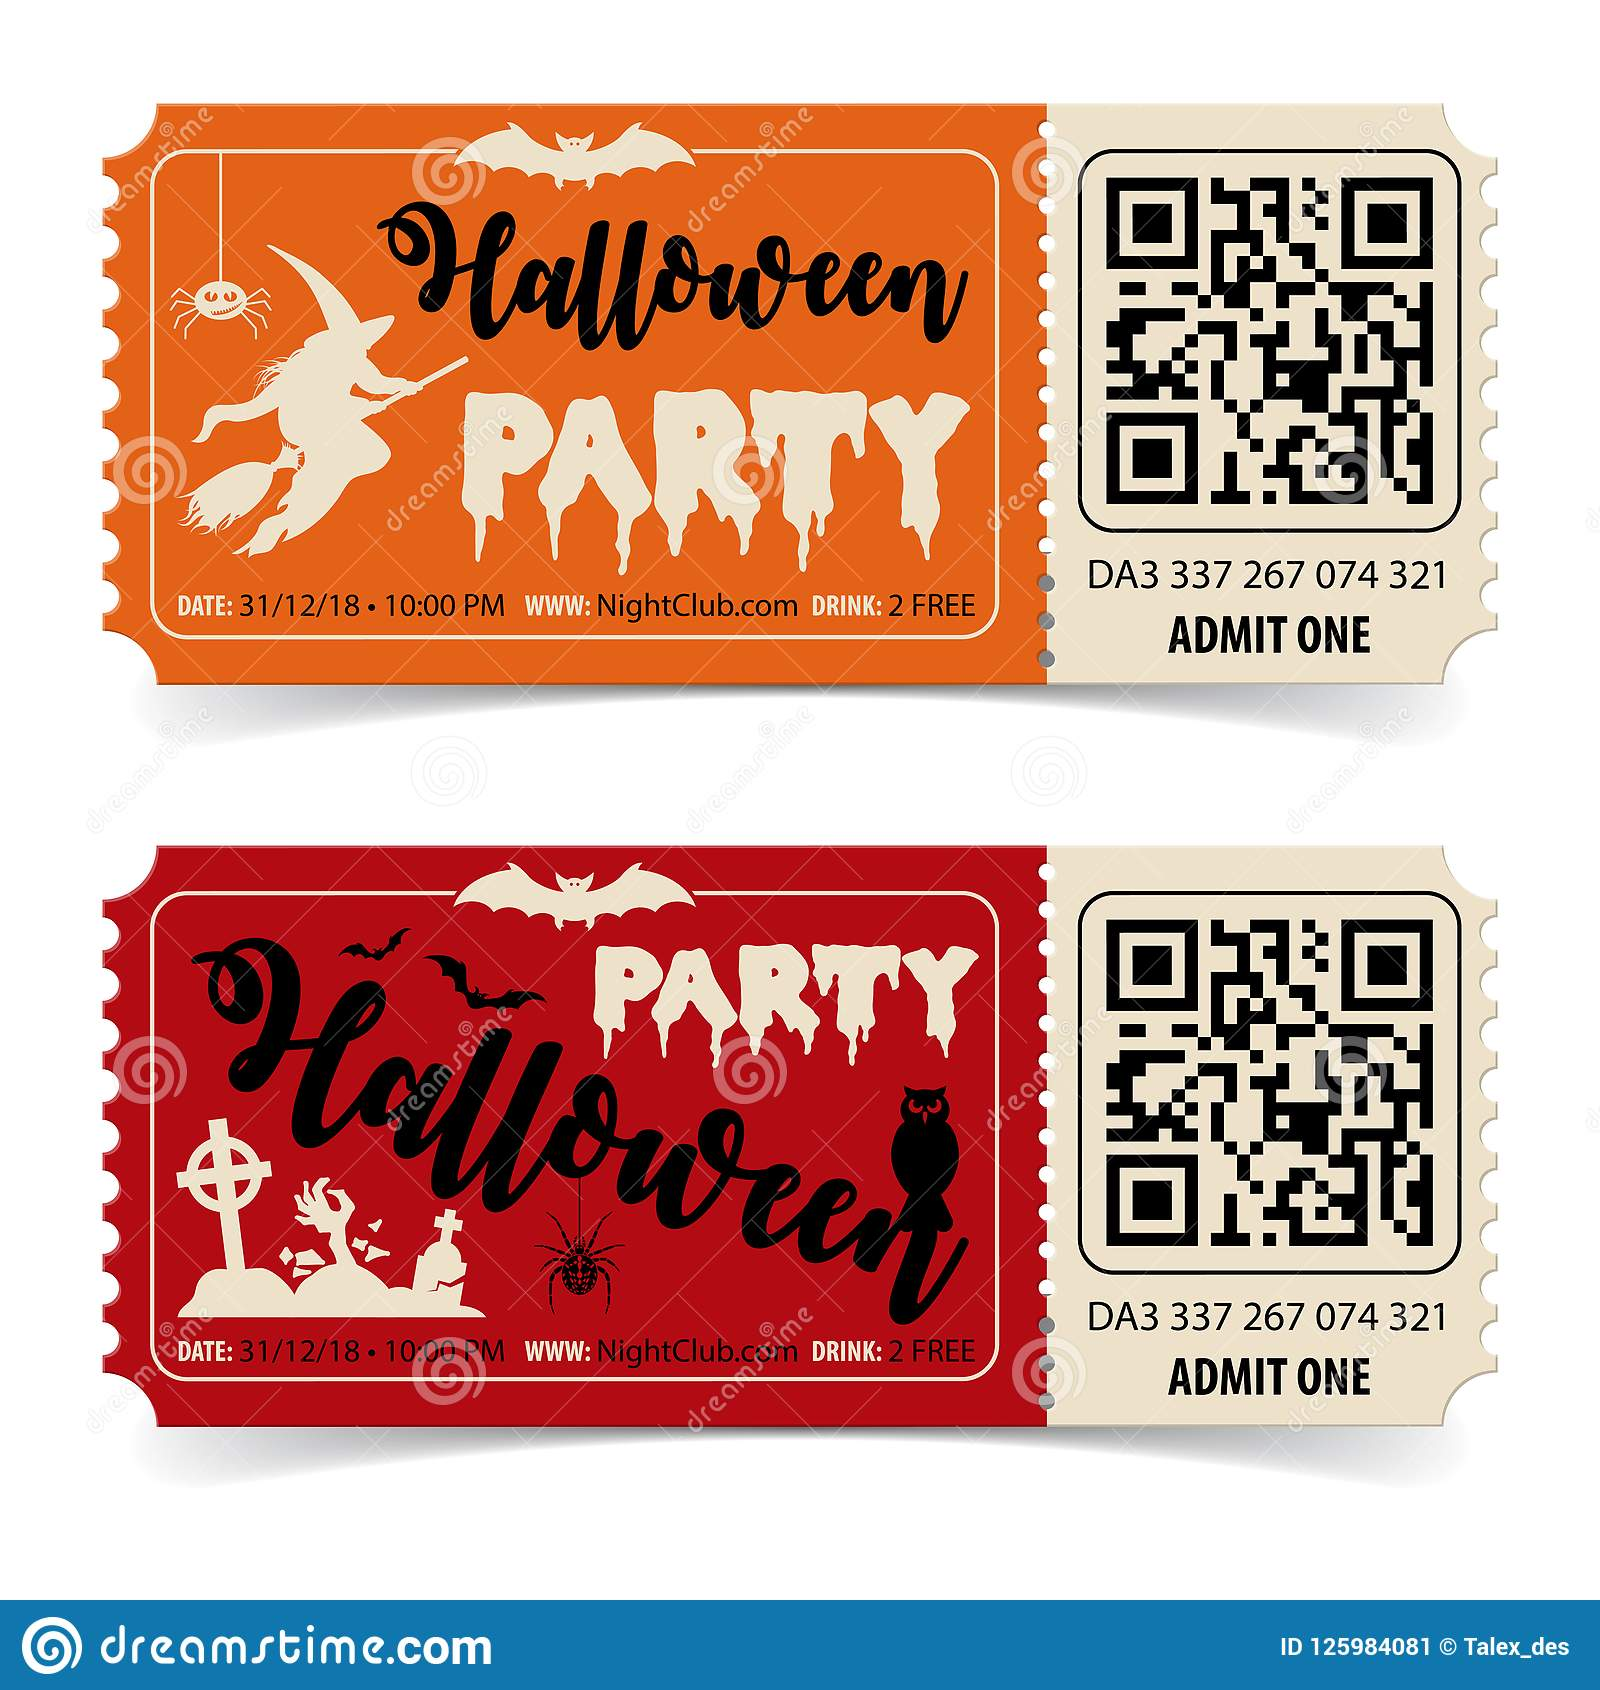 Happy Halloween Party Tickets Stock Vector - Illustration of ...